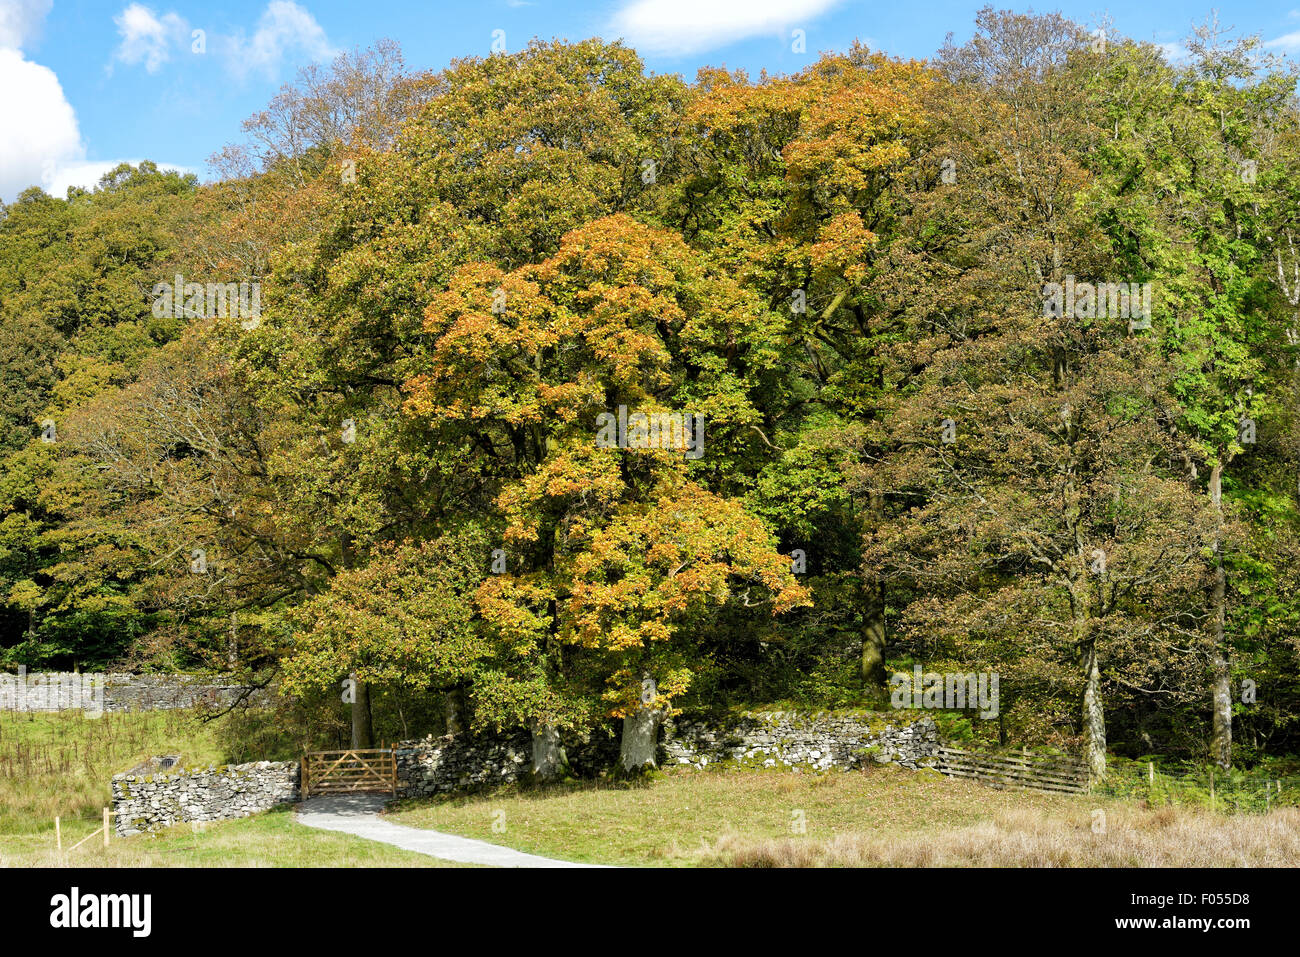 Trees beginning to get their Autumn colour in the Lake District National Park in Cumbria, England, UK - Stock Image